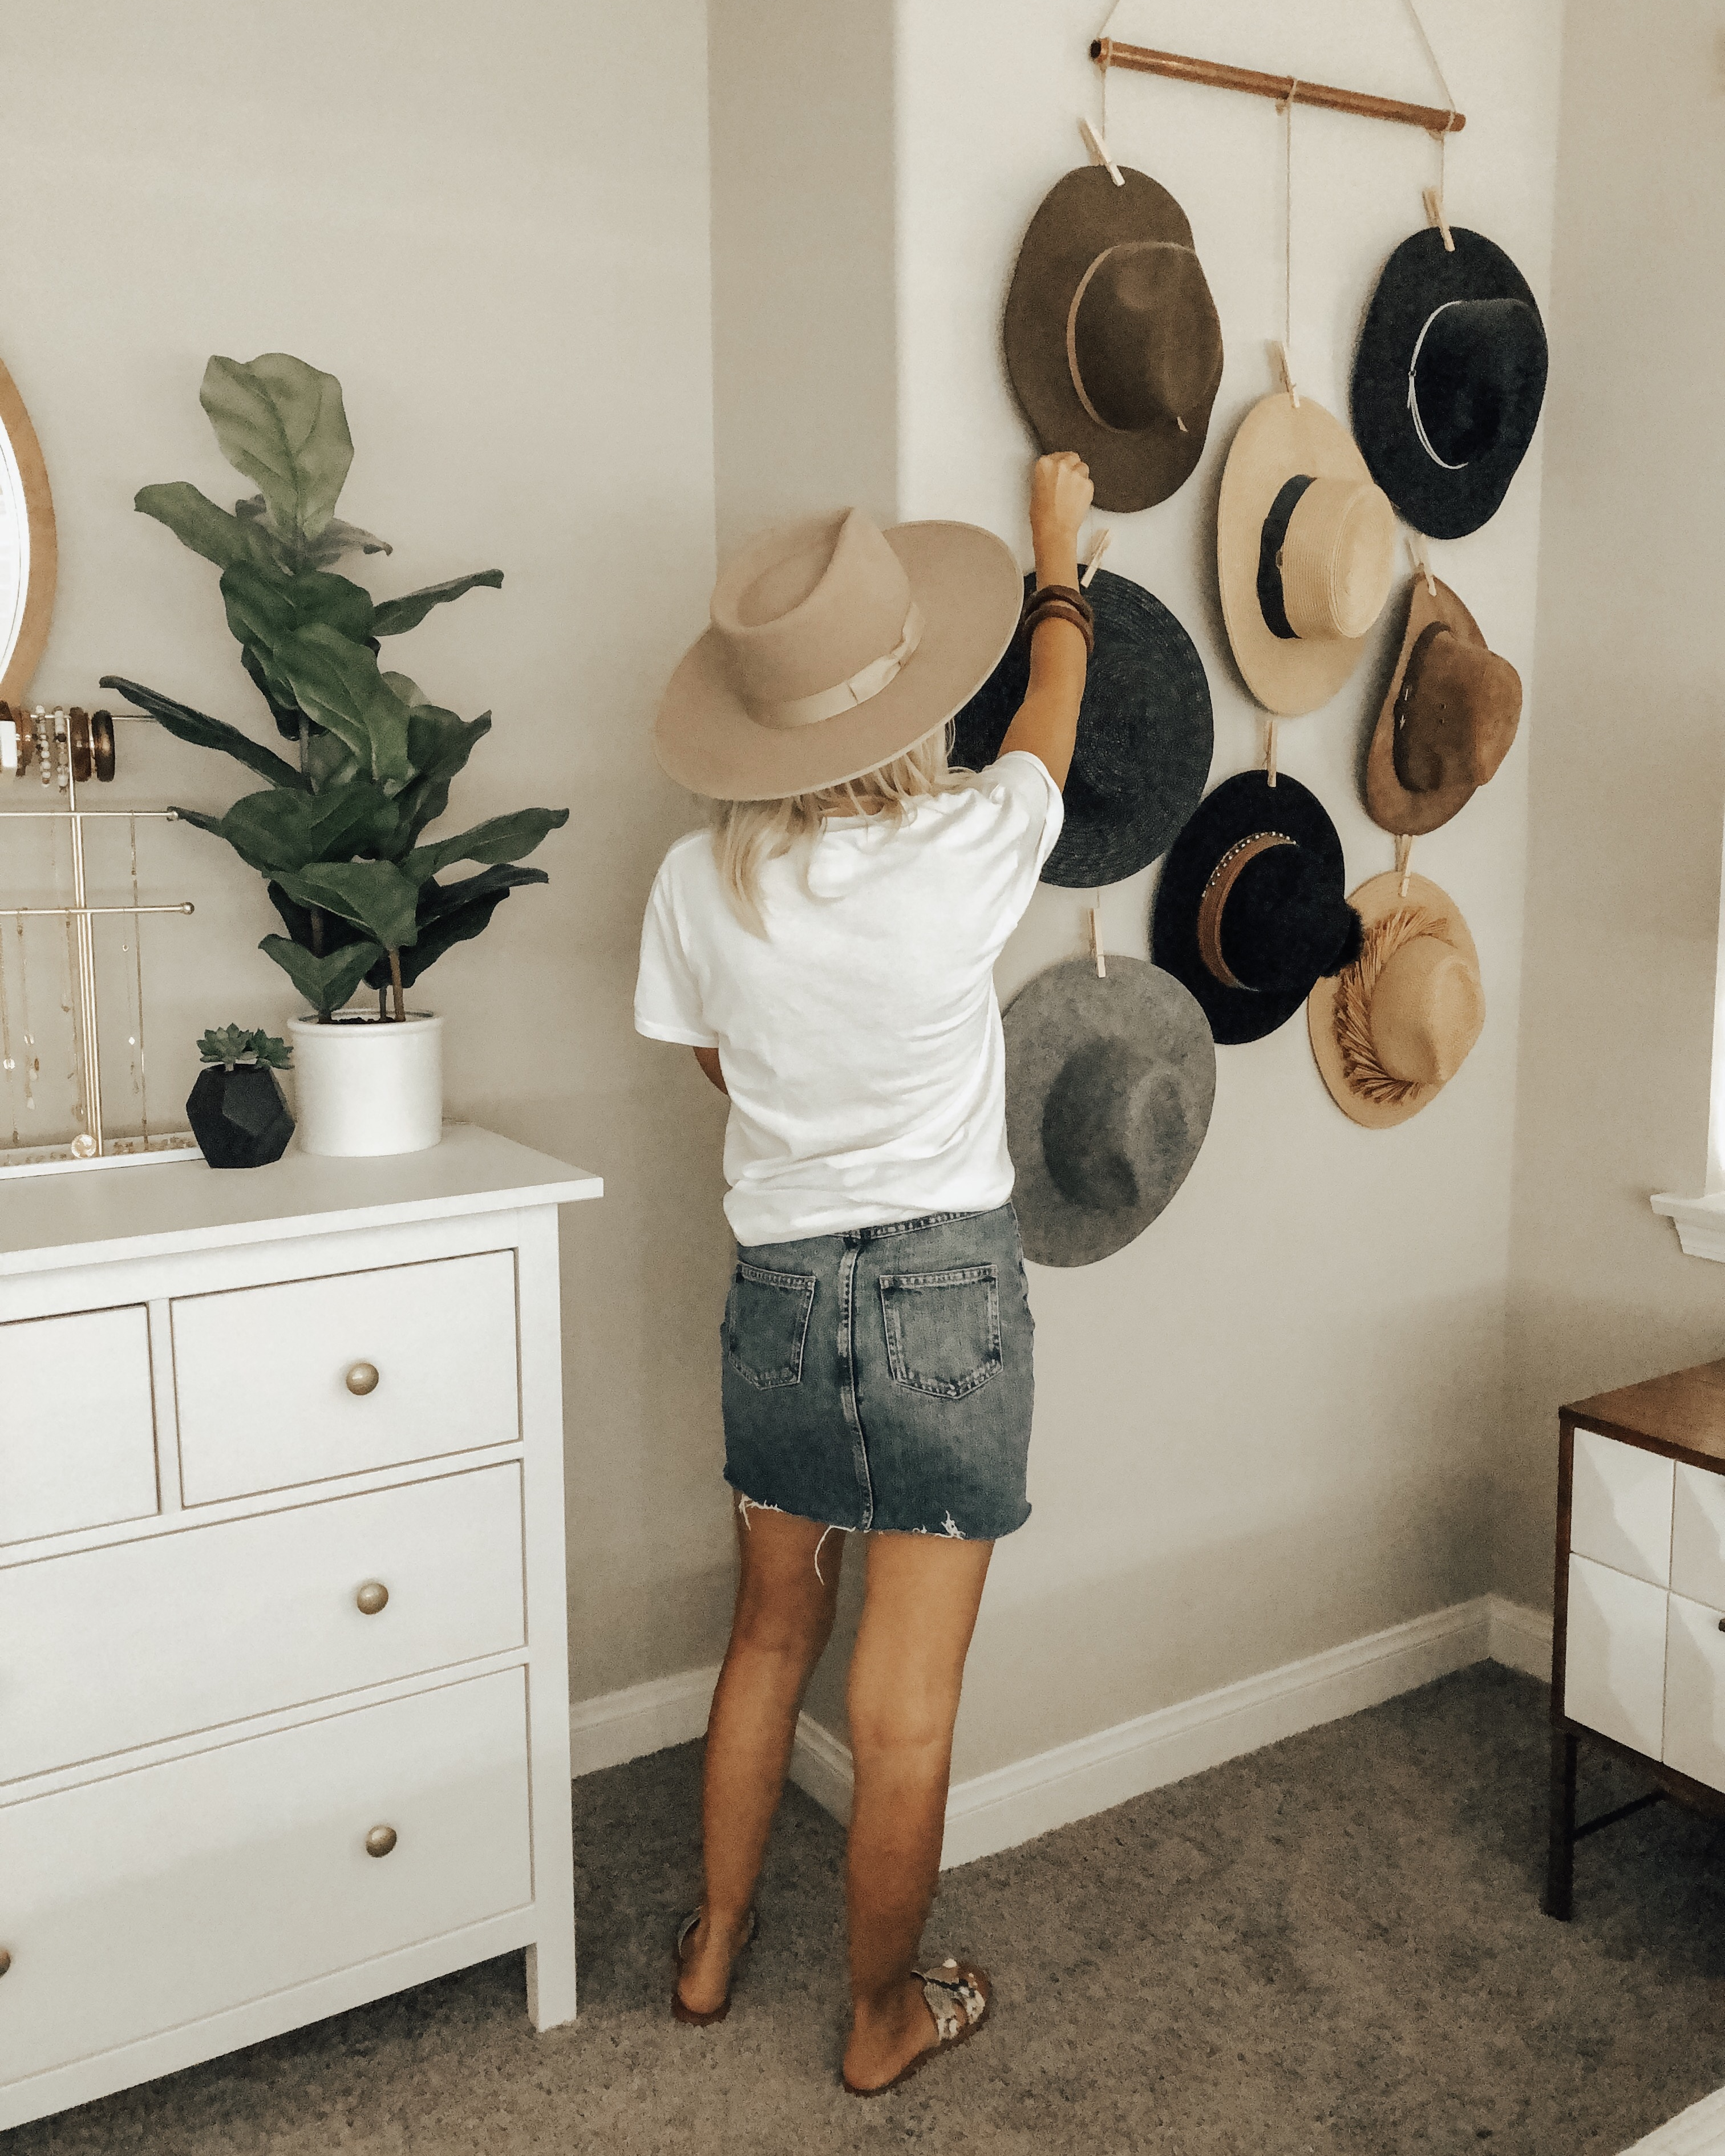 CURRENT FAVORITE HATS FROM A CRAZY HAT LADY- Jaclyn De Leon Style + Sharing all my favorite hats from straw hats to wide brim felt hats and more. Also sharing my expensive hats and designer dupes too.